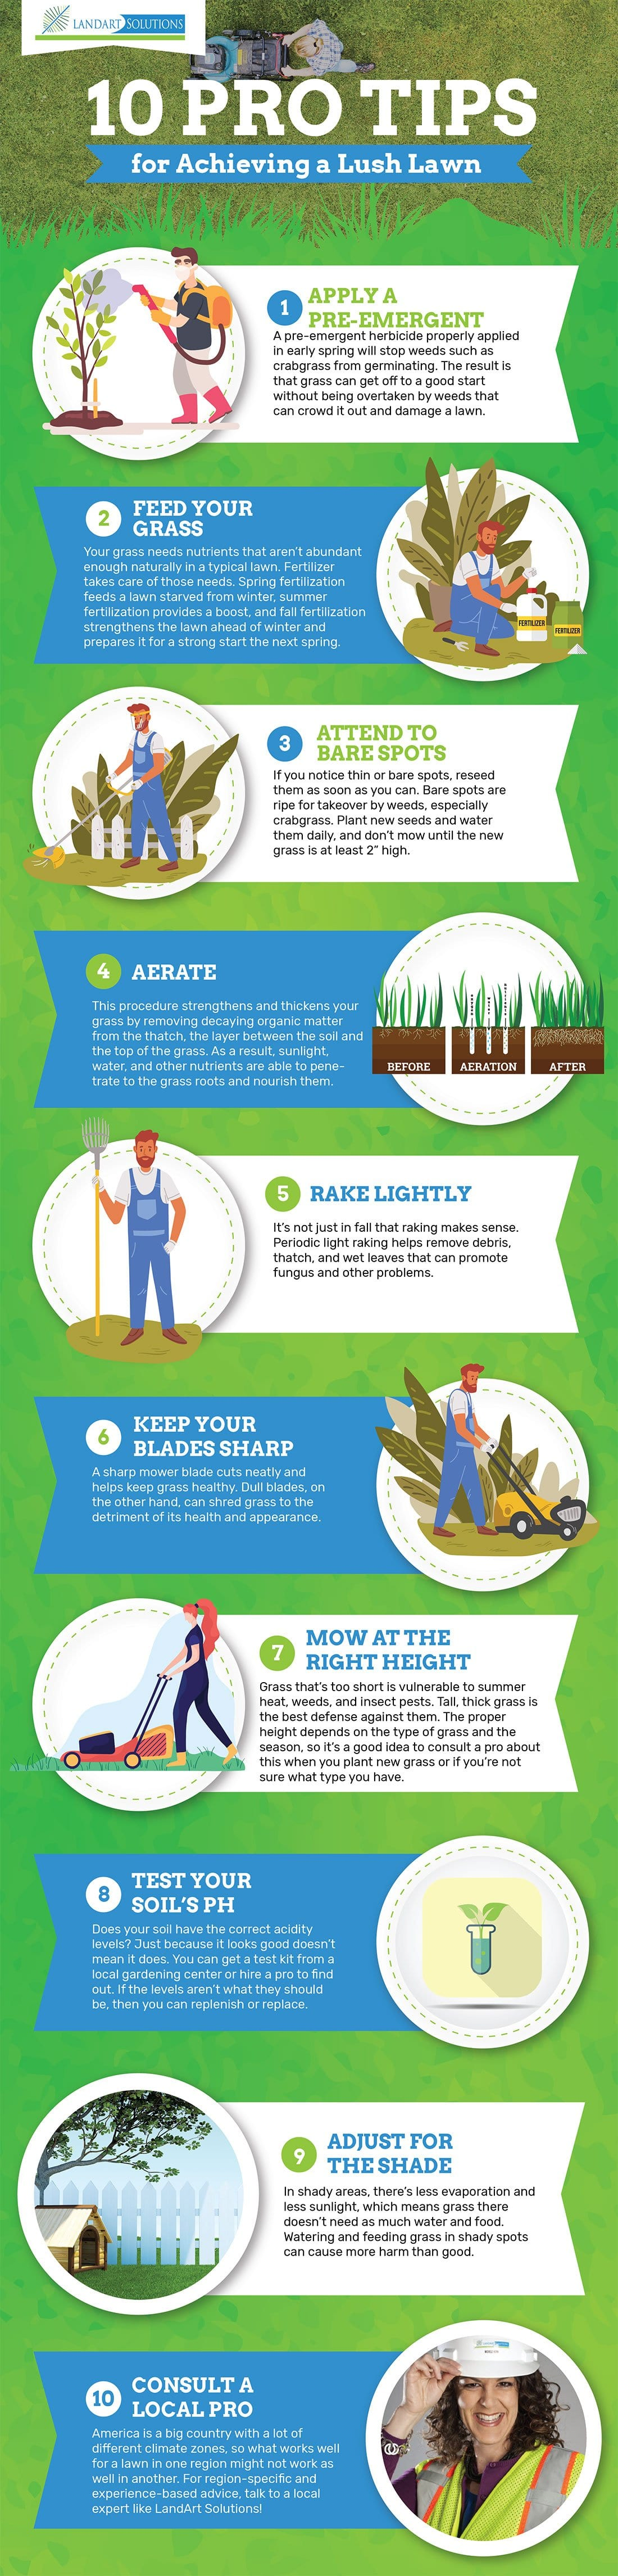 10 Tips for Achieving a Lush Lawn